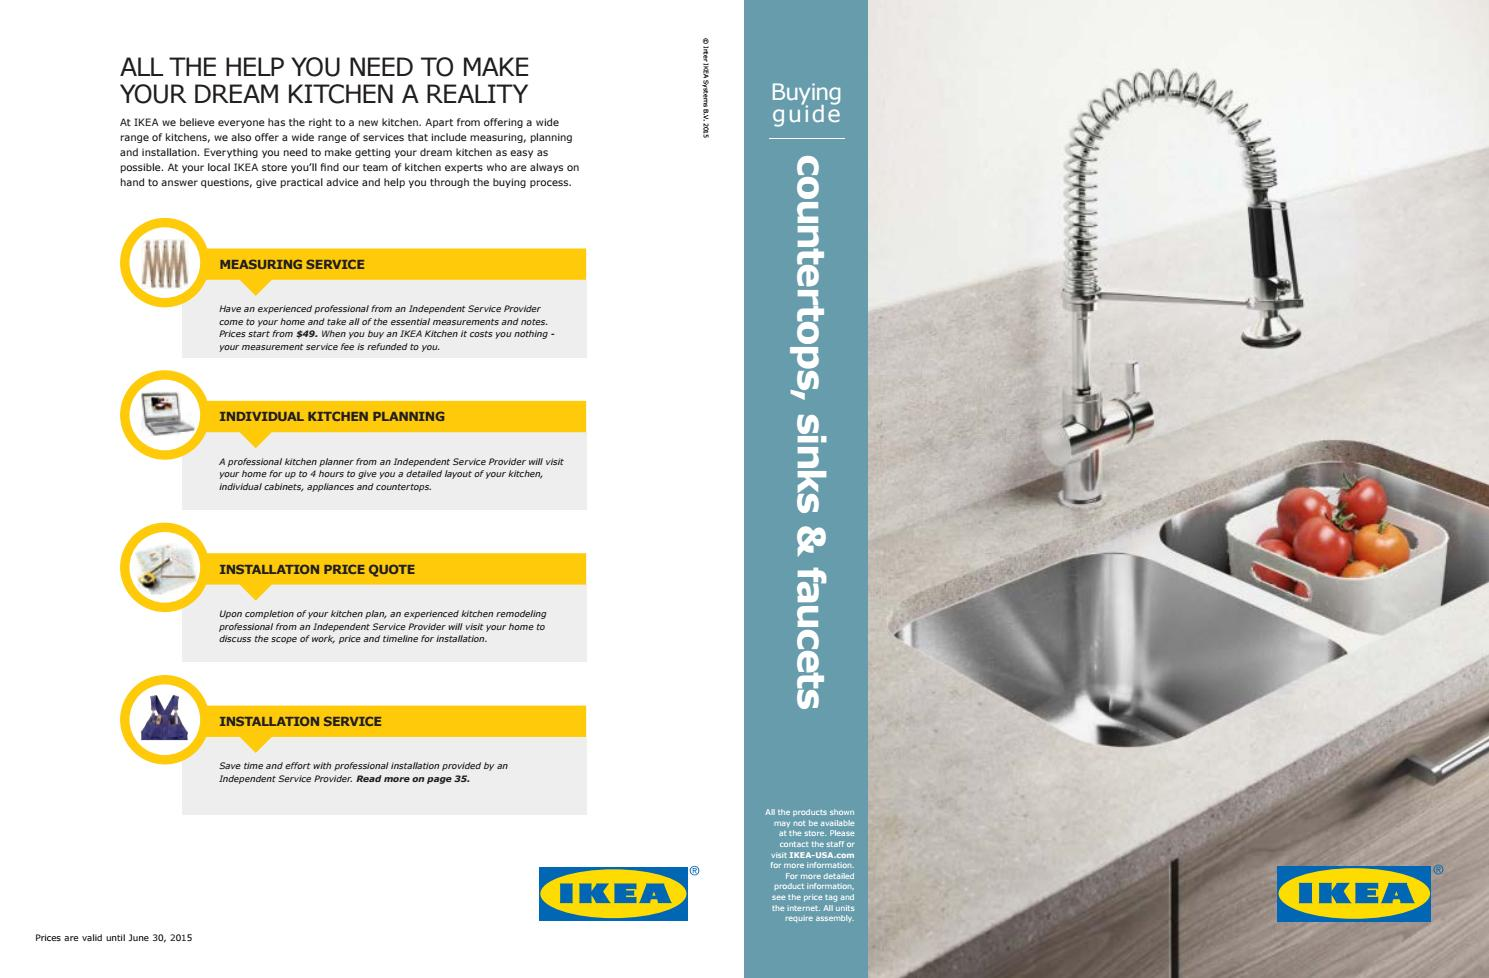 Ikea Kitchen Design Visit Ikea Kitchen By Home Design 2018 Issuu